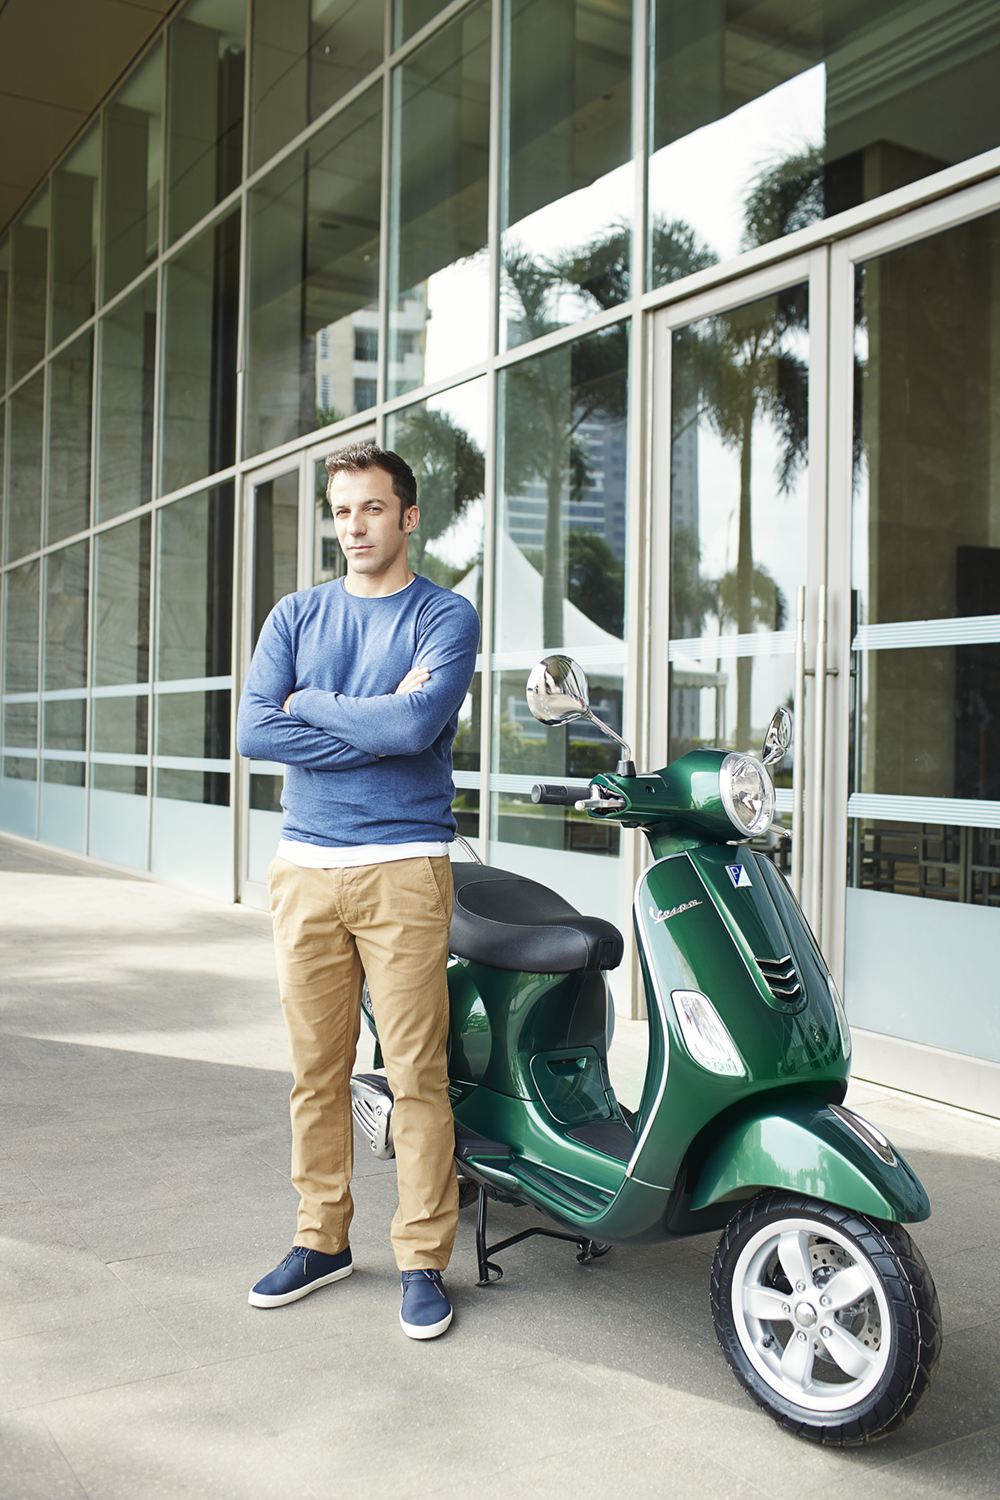 KC_Vespa Oct 2015 326 copy.jpg